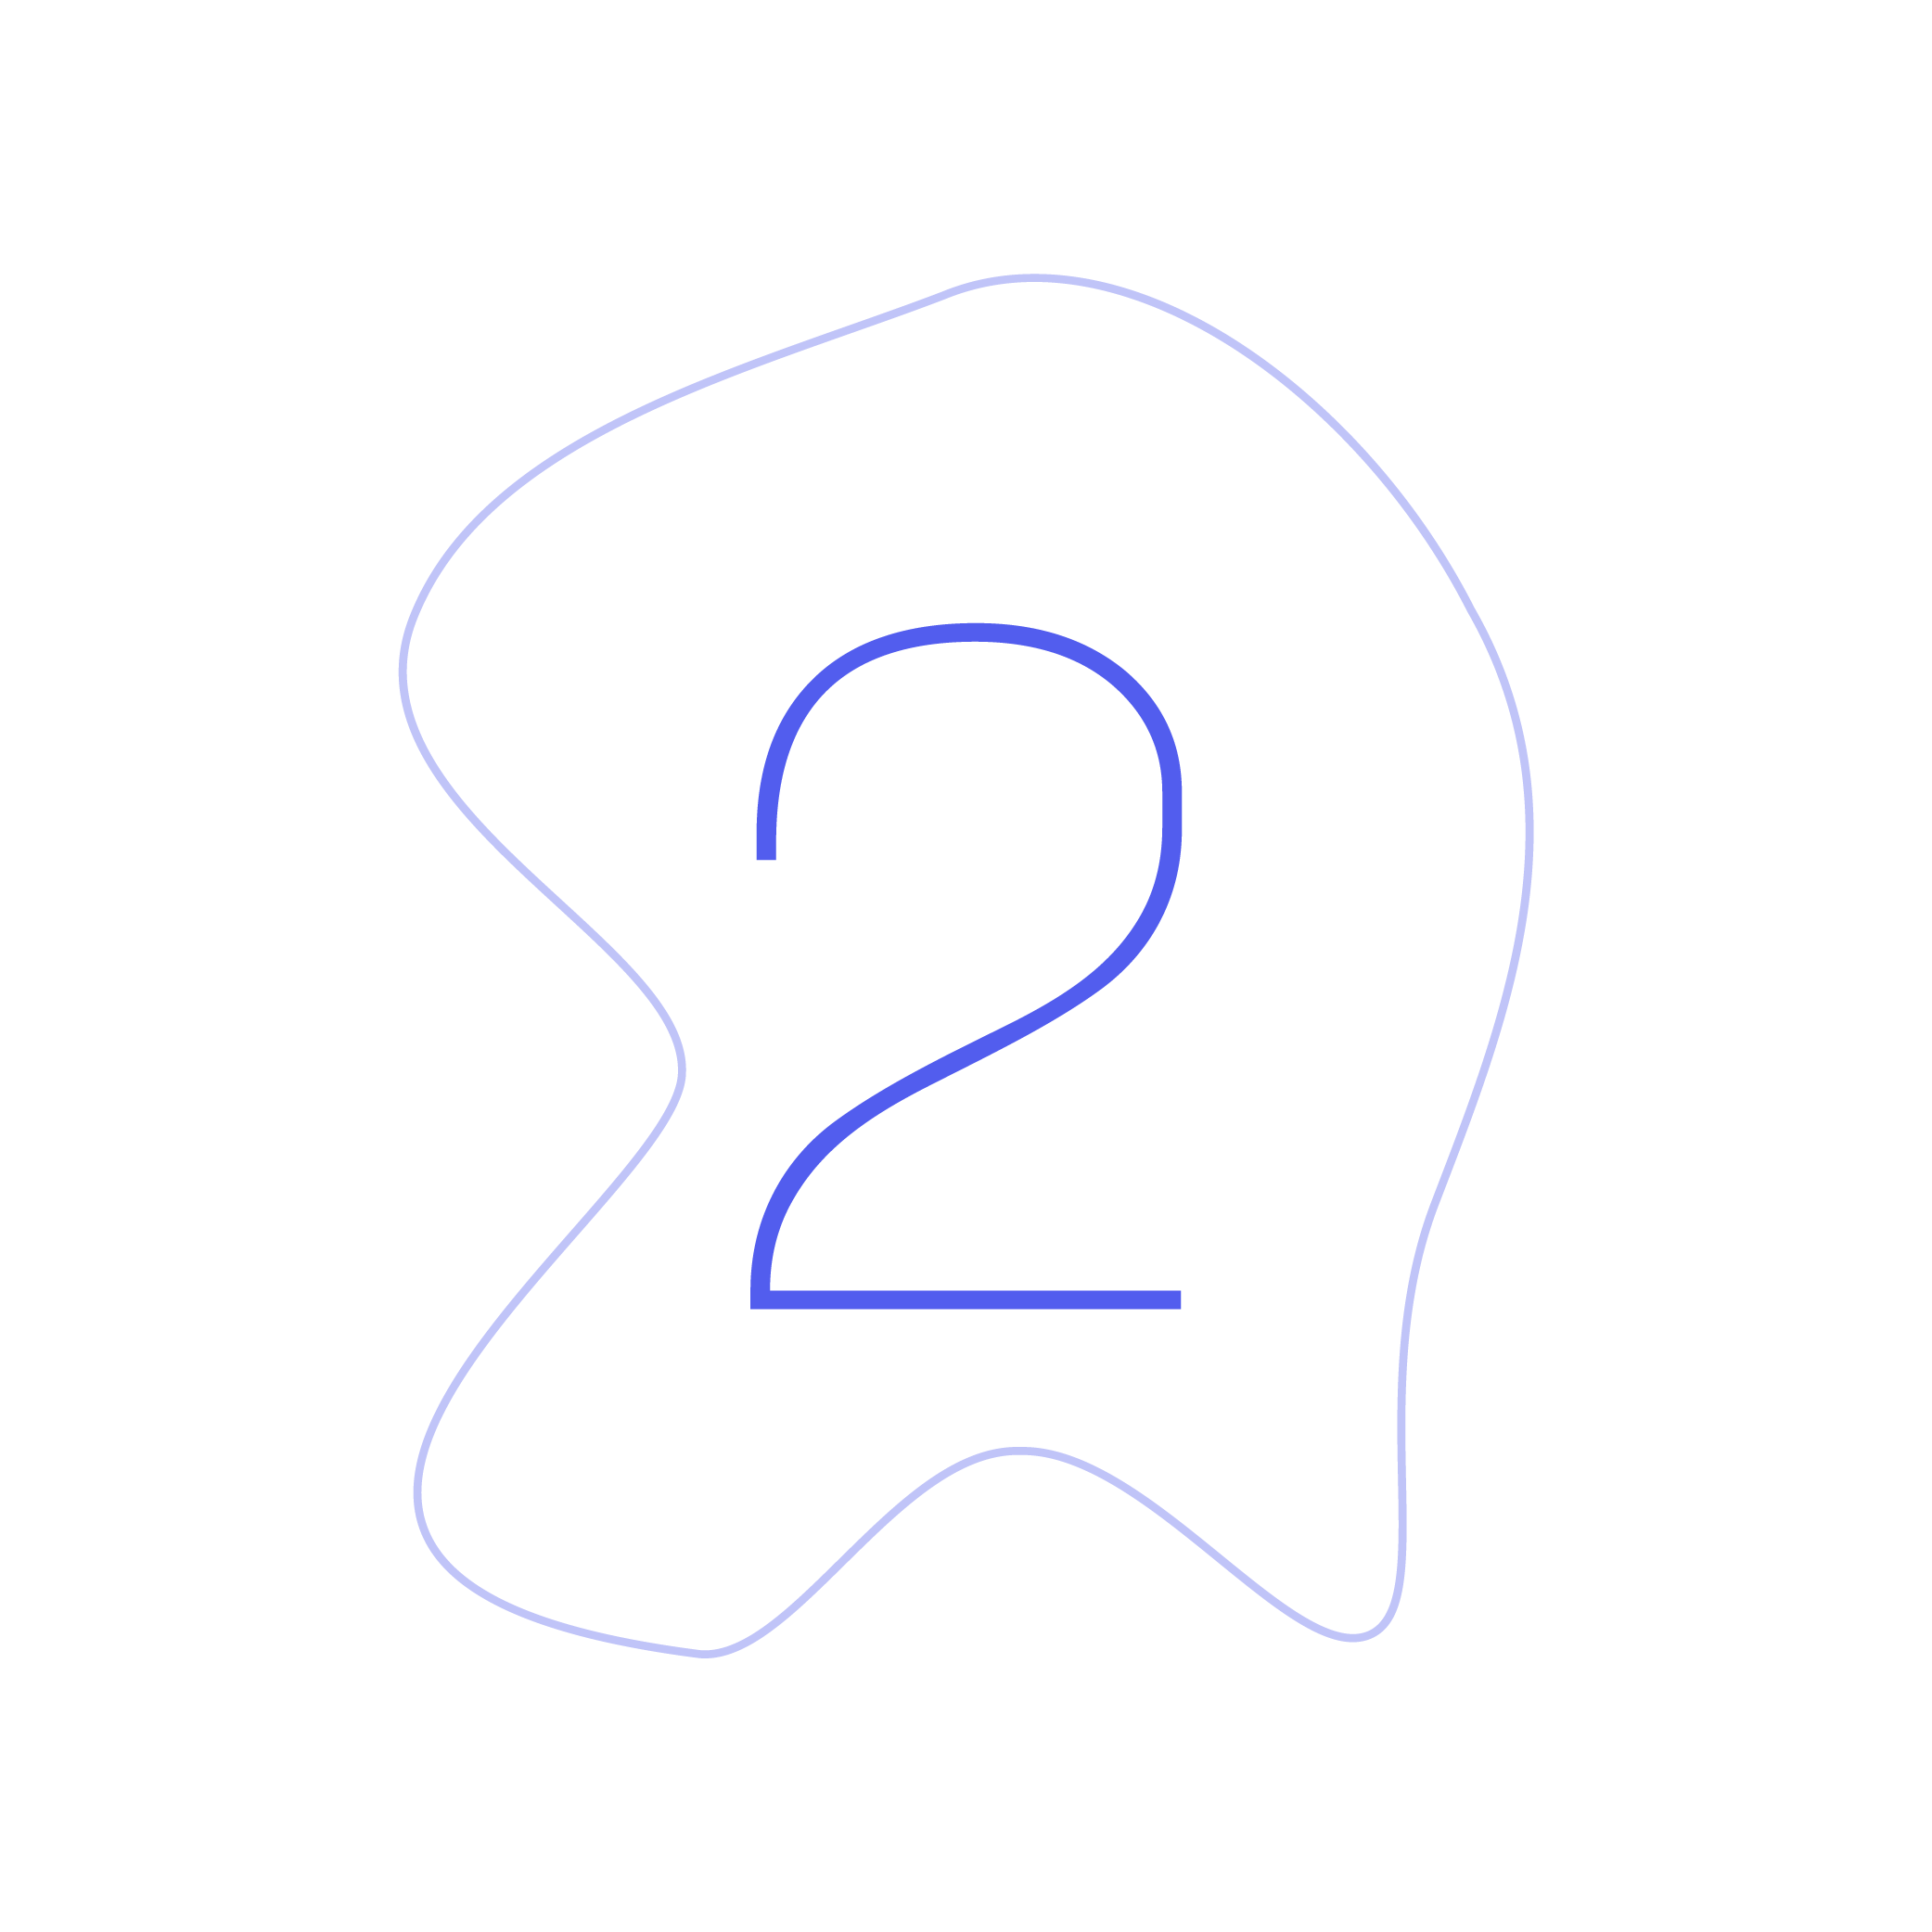 number-02.png